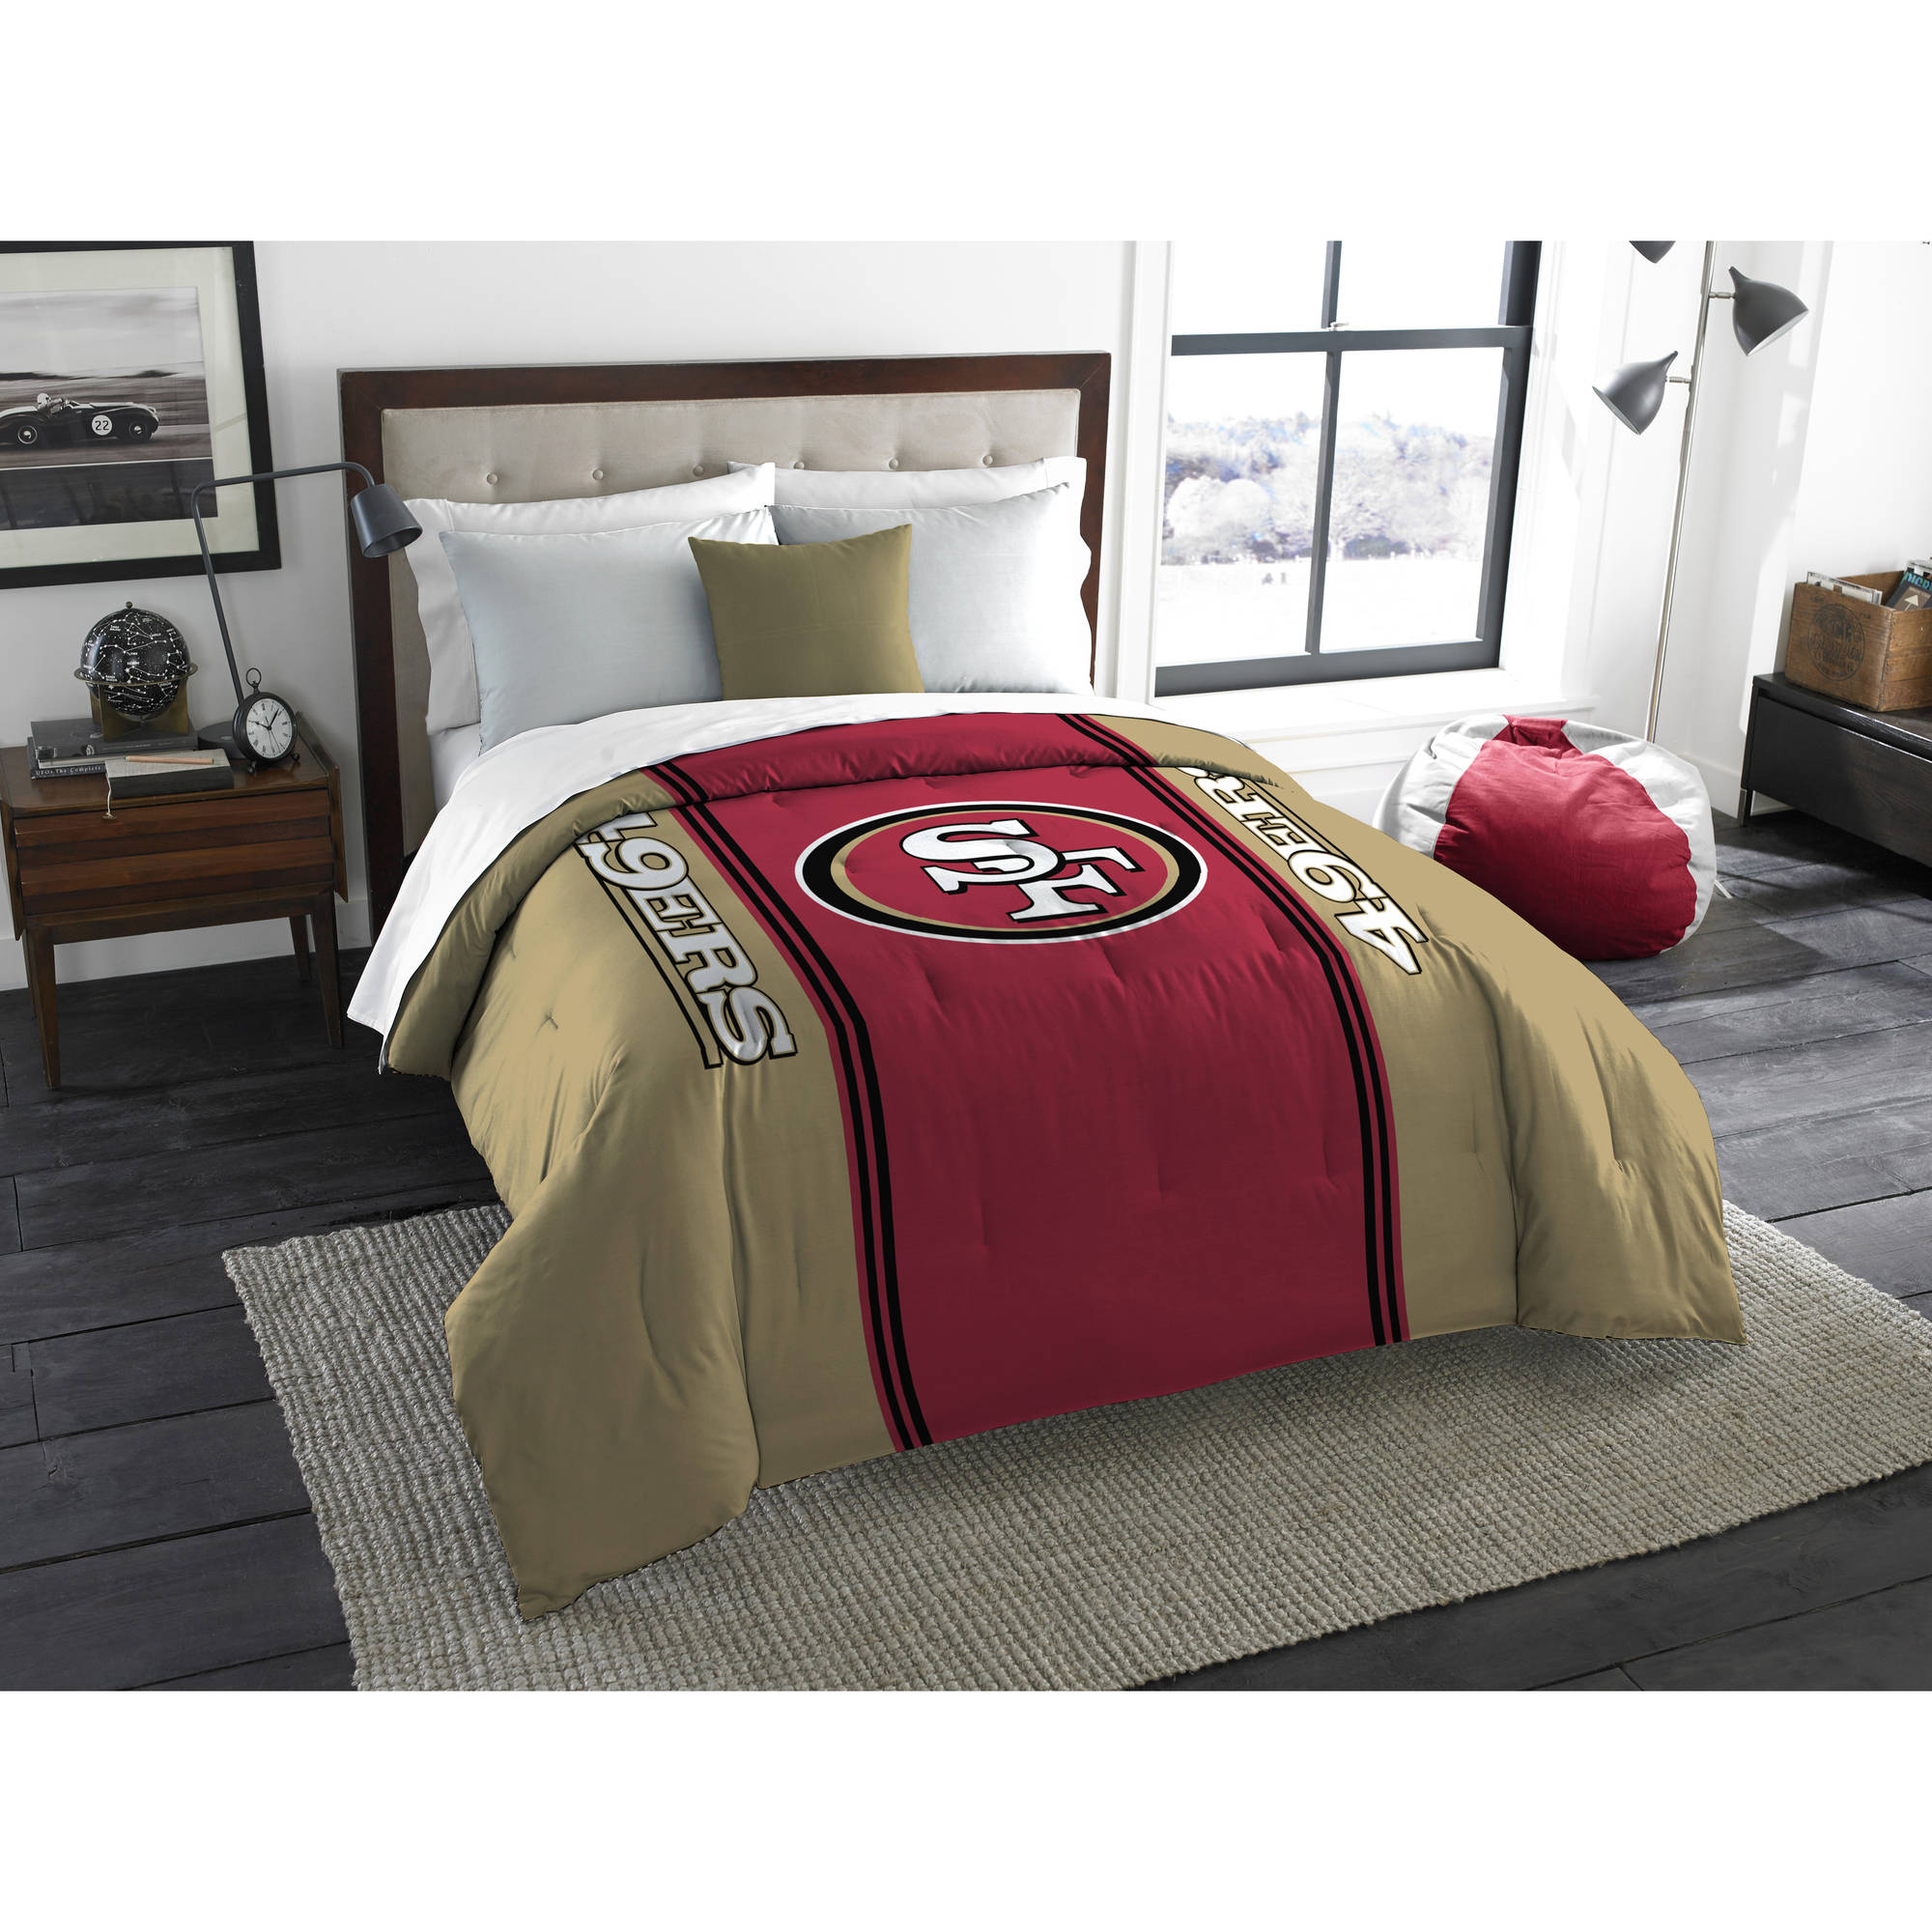 "NFL San Francisco 49ers ""Mascot"" Twin/Full Bedding Comforter"